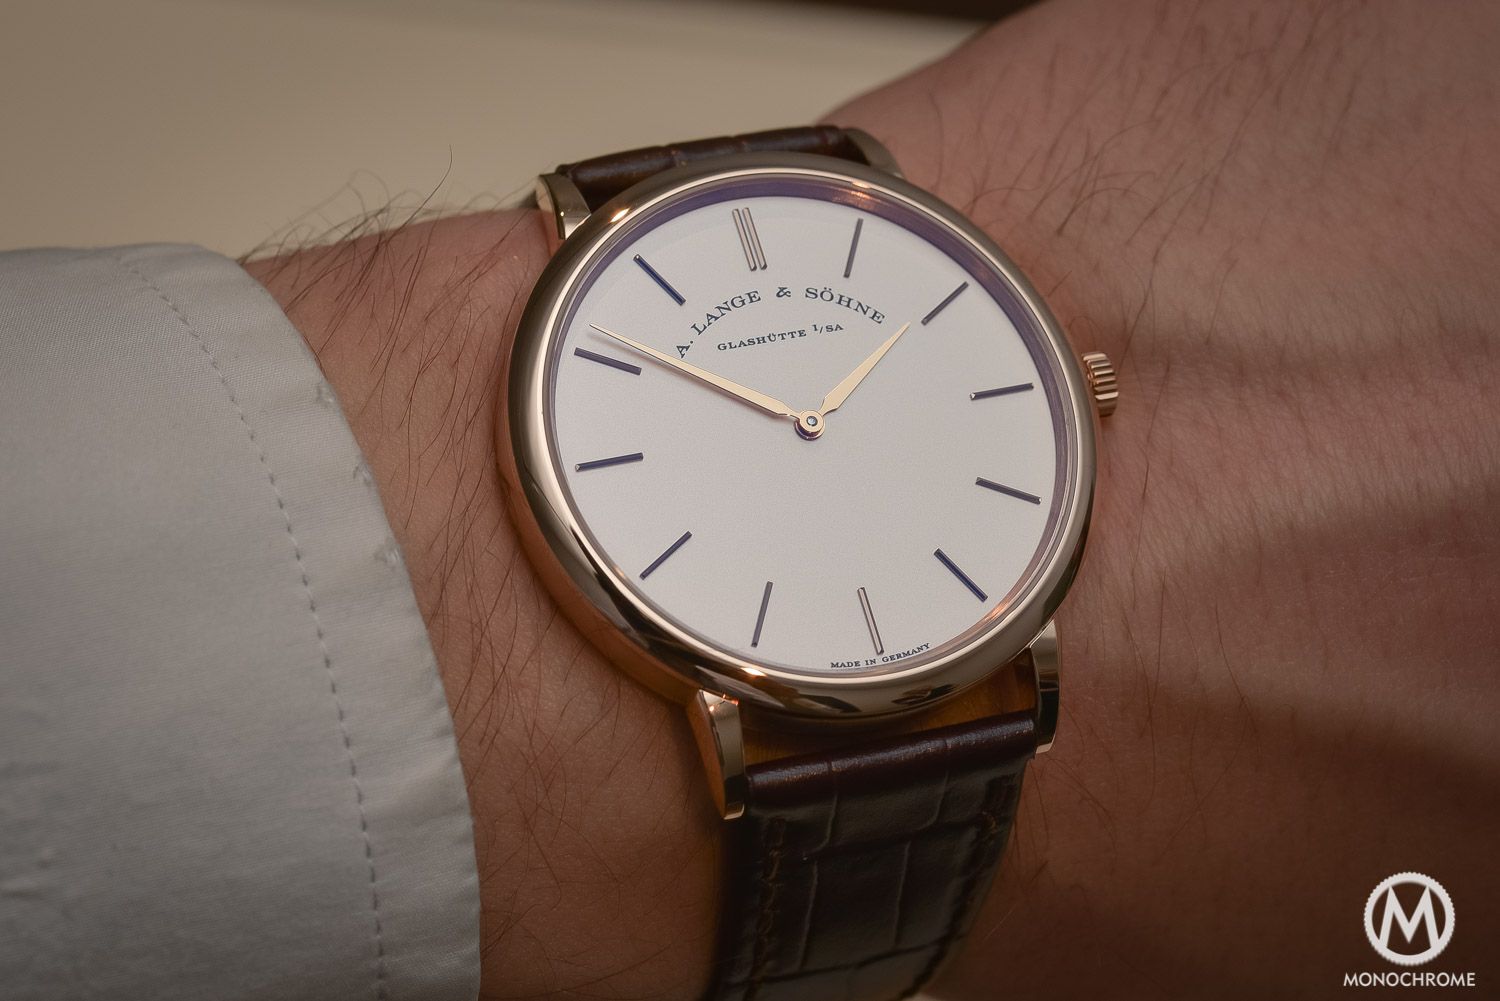 Hands-on with the 2016 edition of the A. Lange & Sohne Saxonia Thin, with new face (live pics, specs & price)